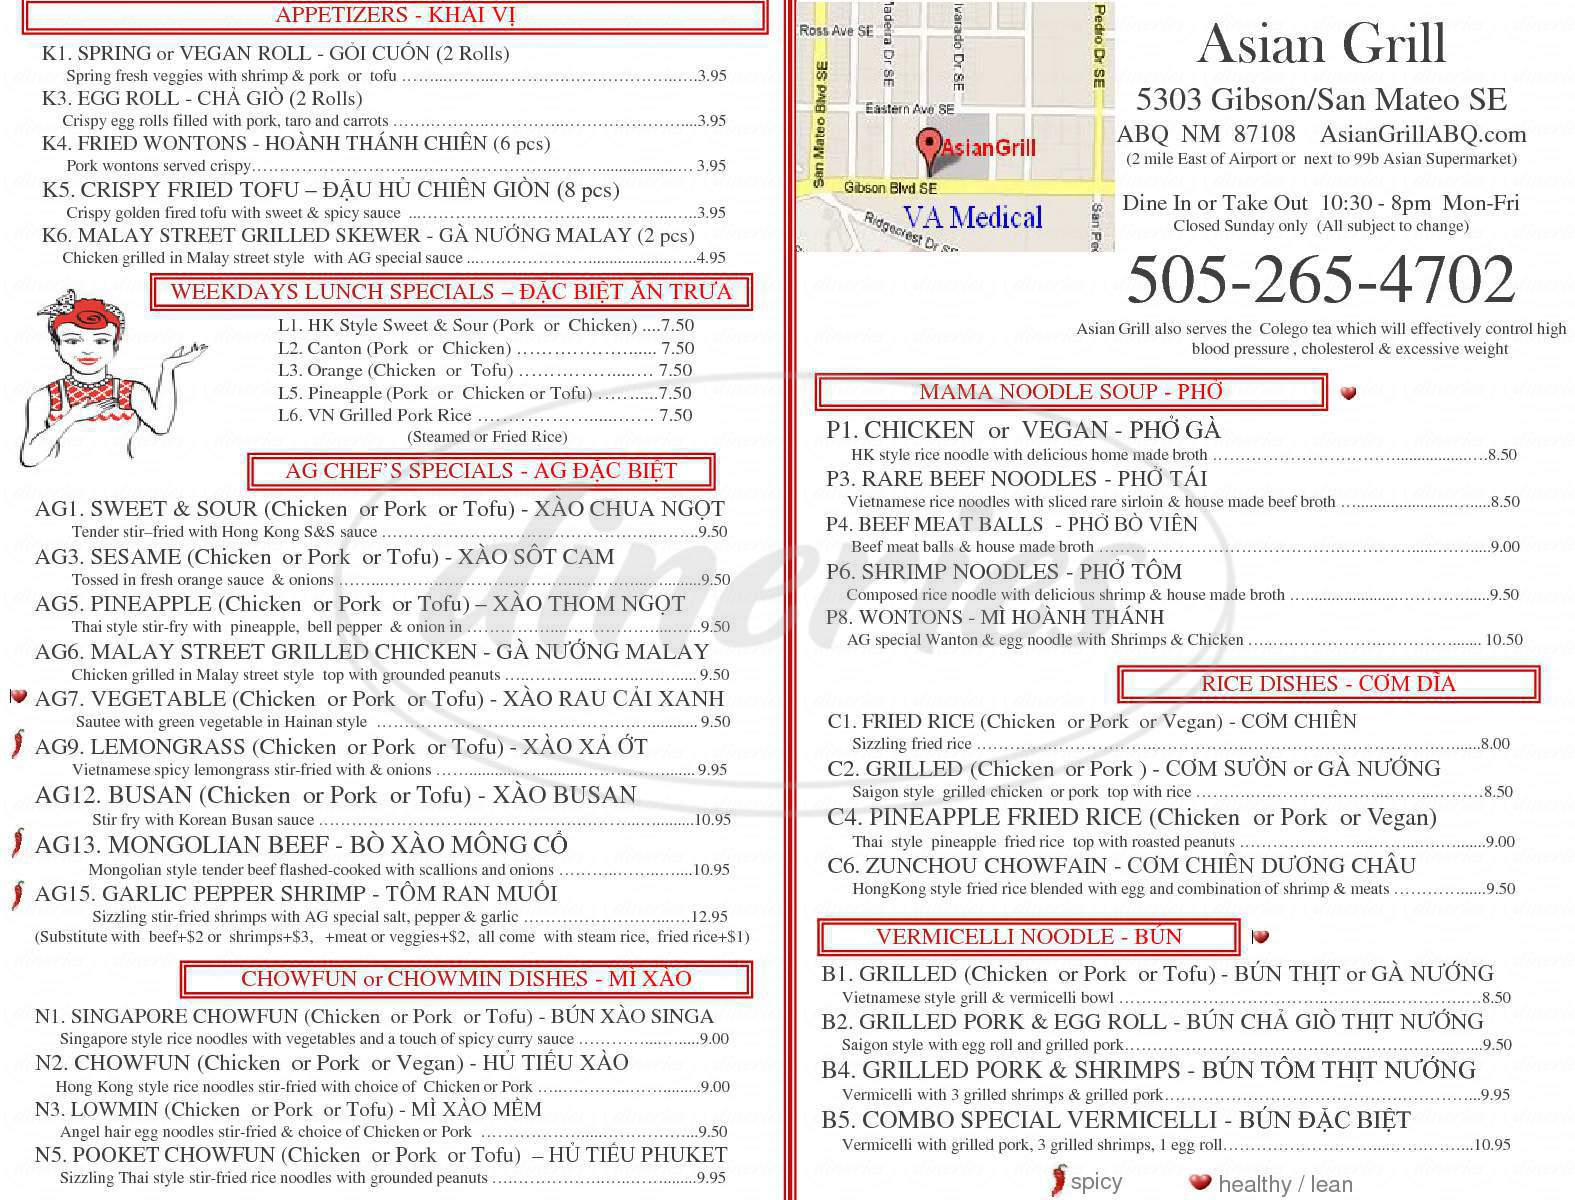 menu for Asian Grill